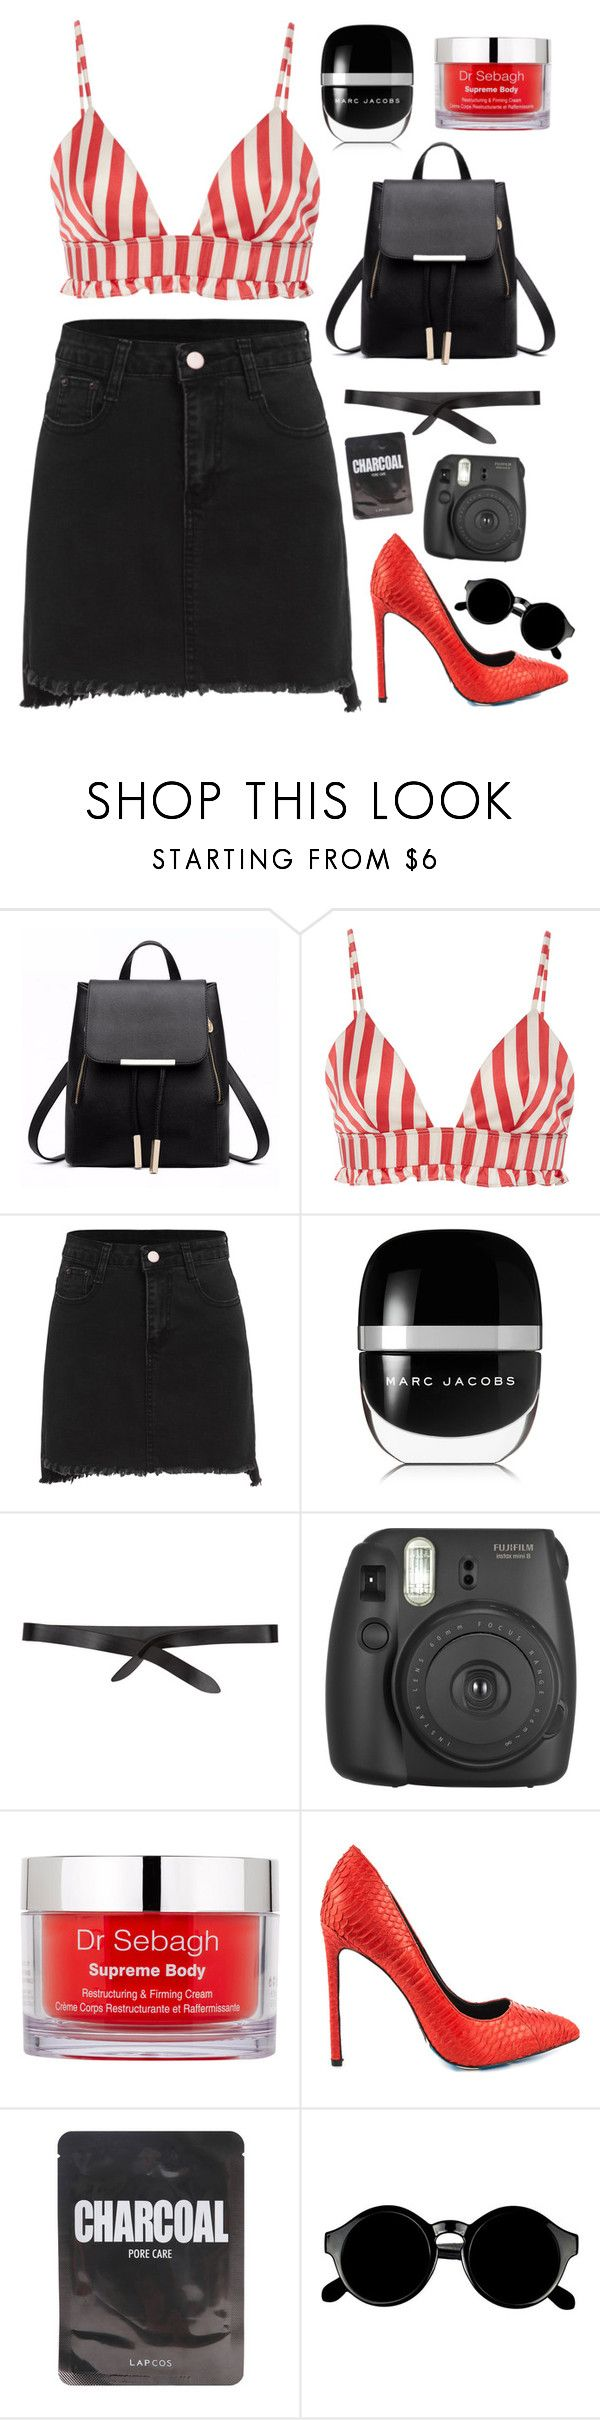 """""""Candy"""" by mode-222 ❤ liked on Polyvore featuring Morgan Lane, Marc Jacobs, Isabel Marant, Fujifilm, Dr. Sebagh, TaylorSays, Lapcos and Retrò"""